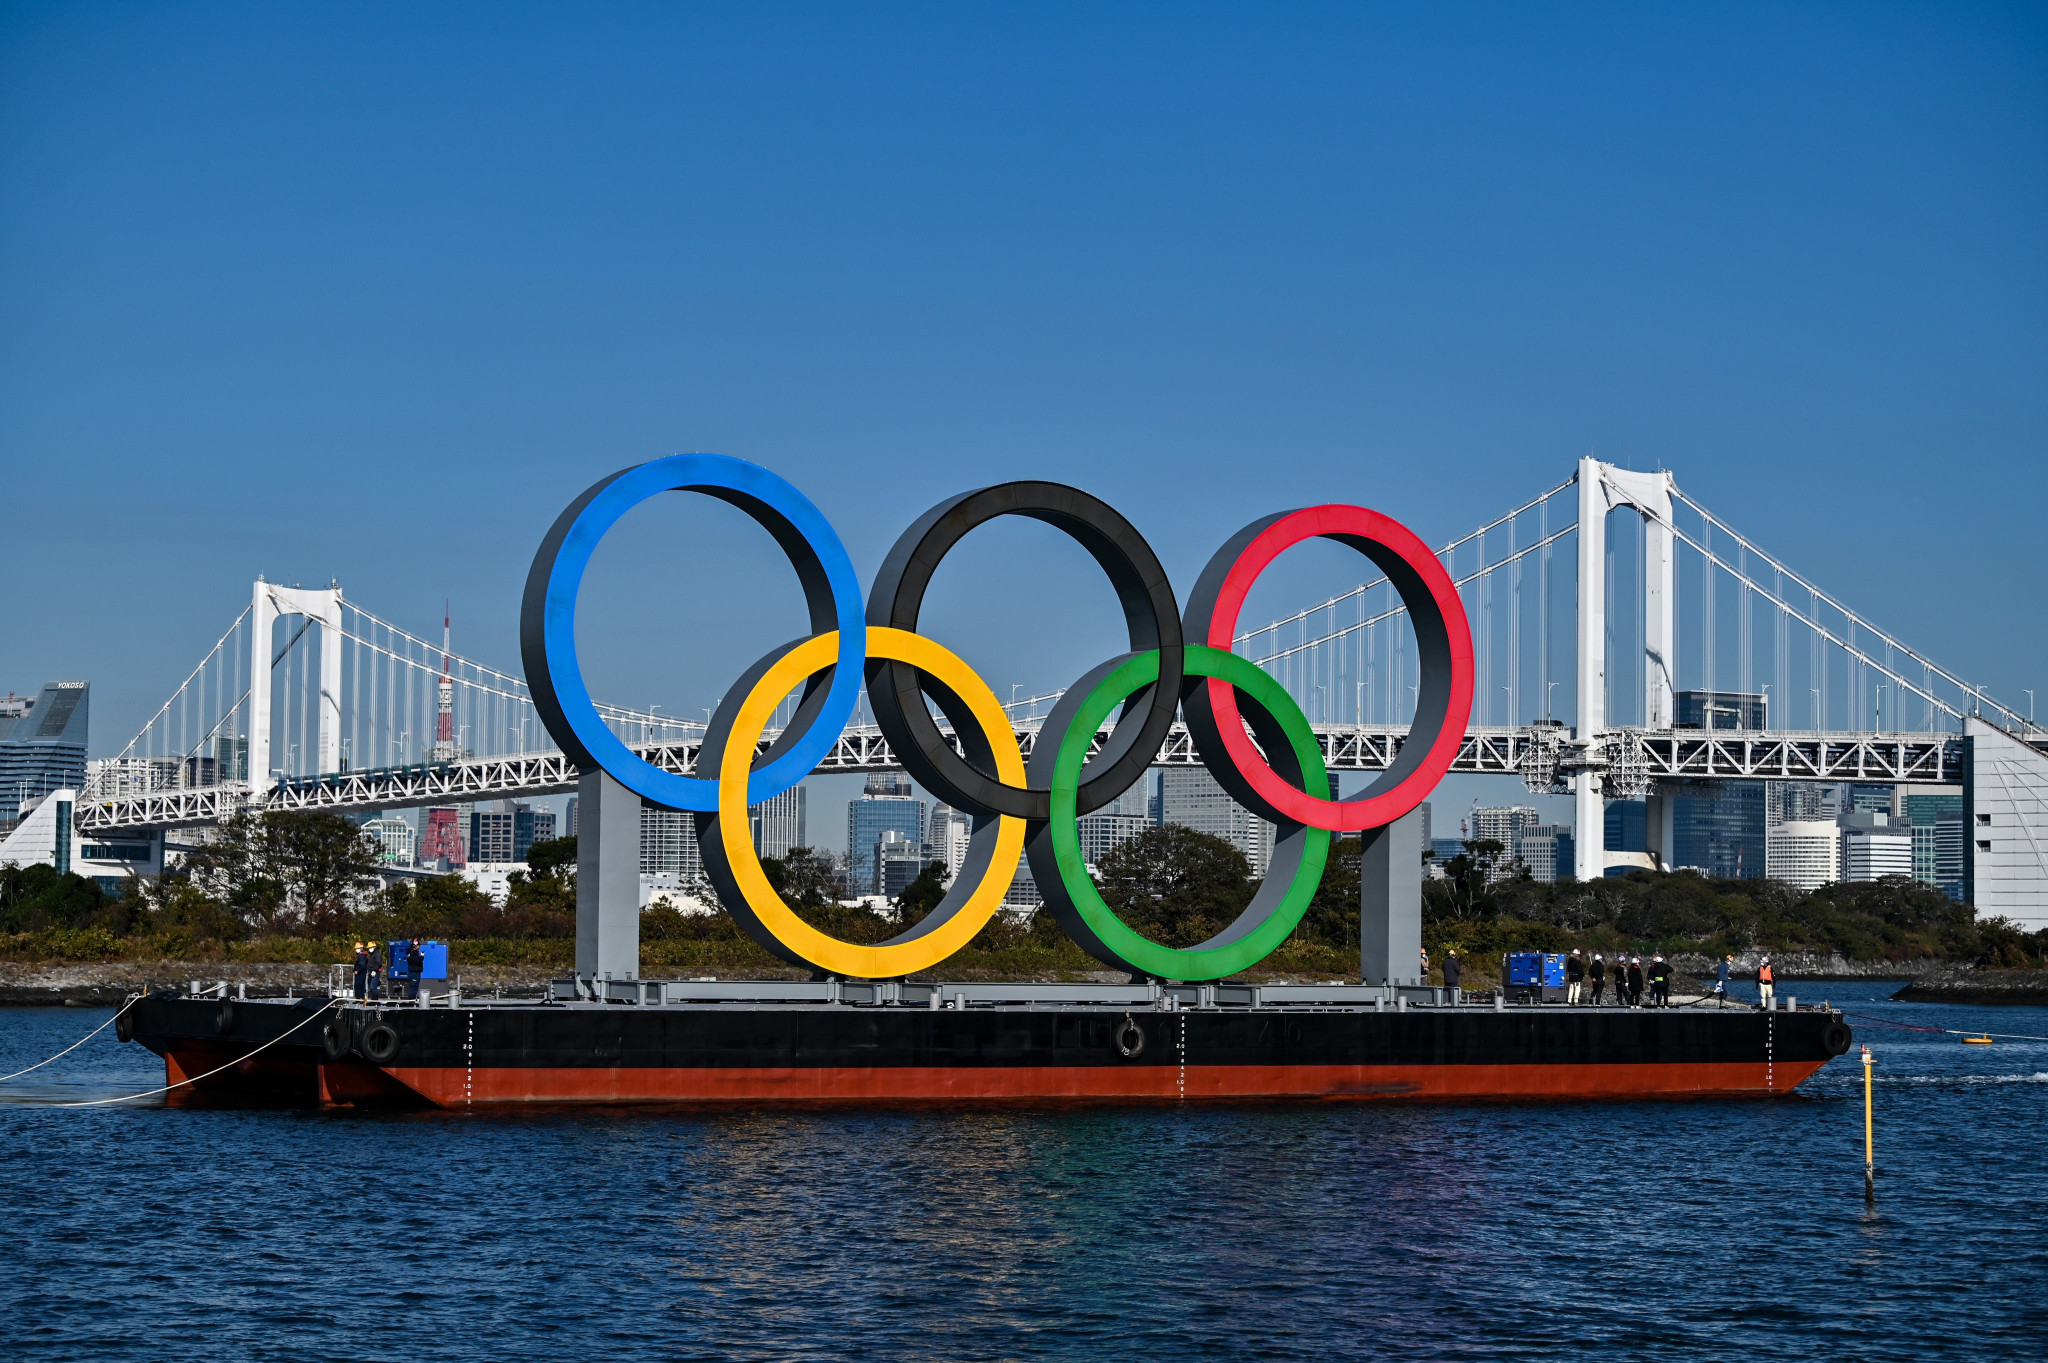 Olympic Rings returned to Tokyo Bay after safety and maintenance checks